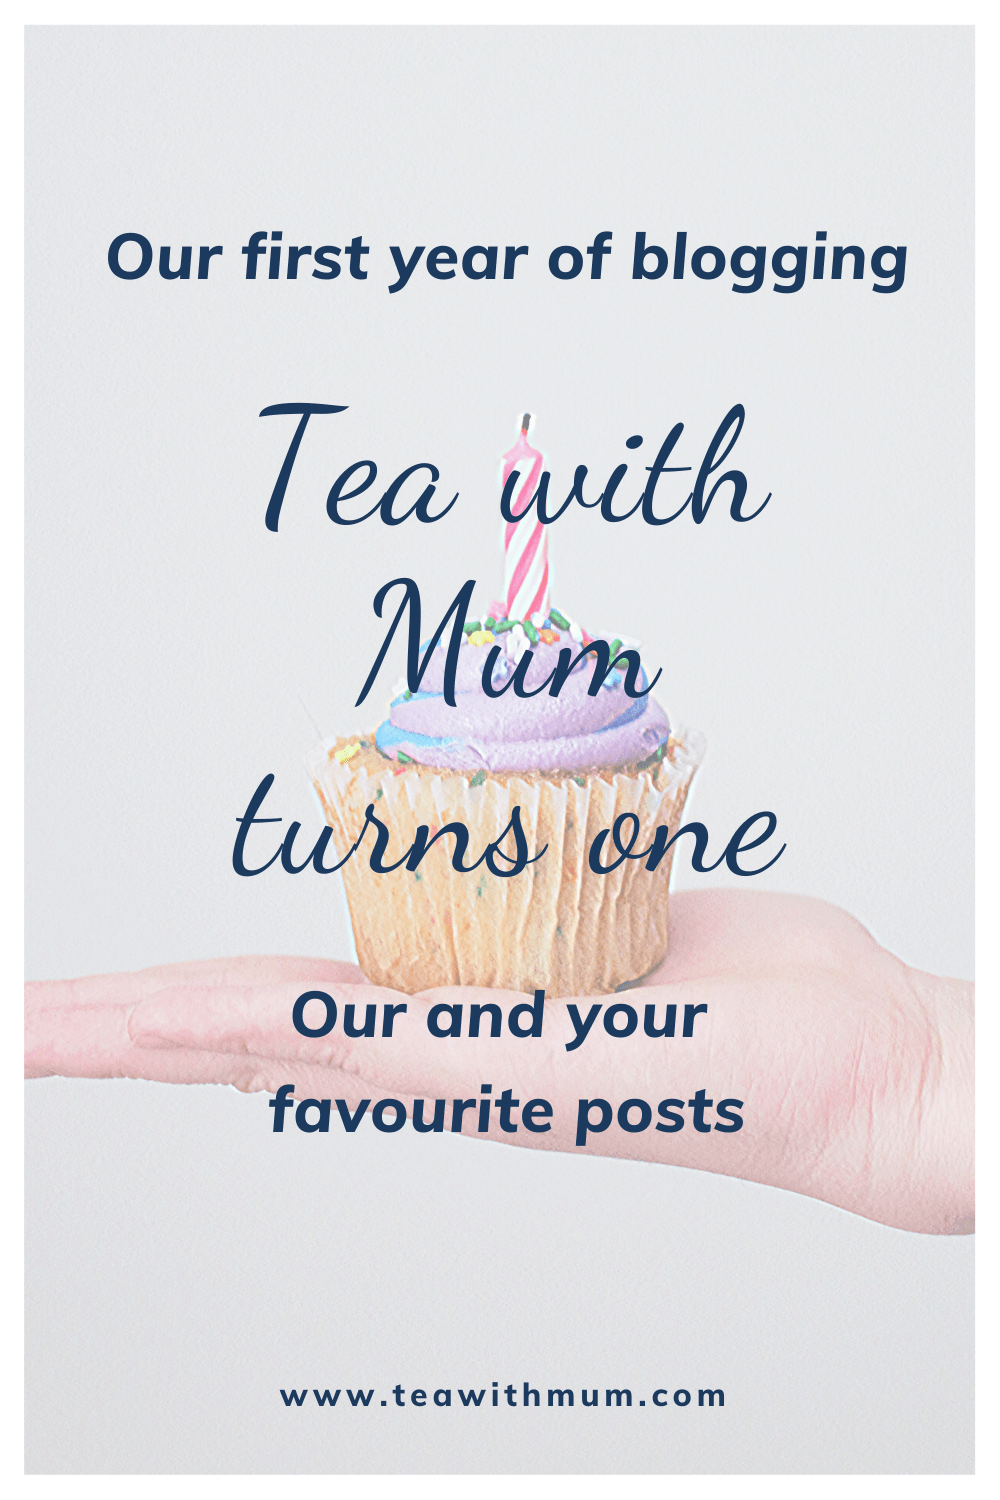 Our first year of blogging: Tea with Mum turns one! Our and your favourite posts